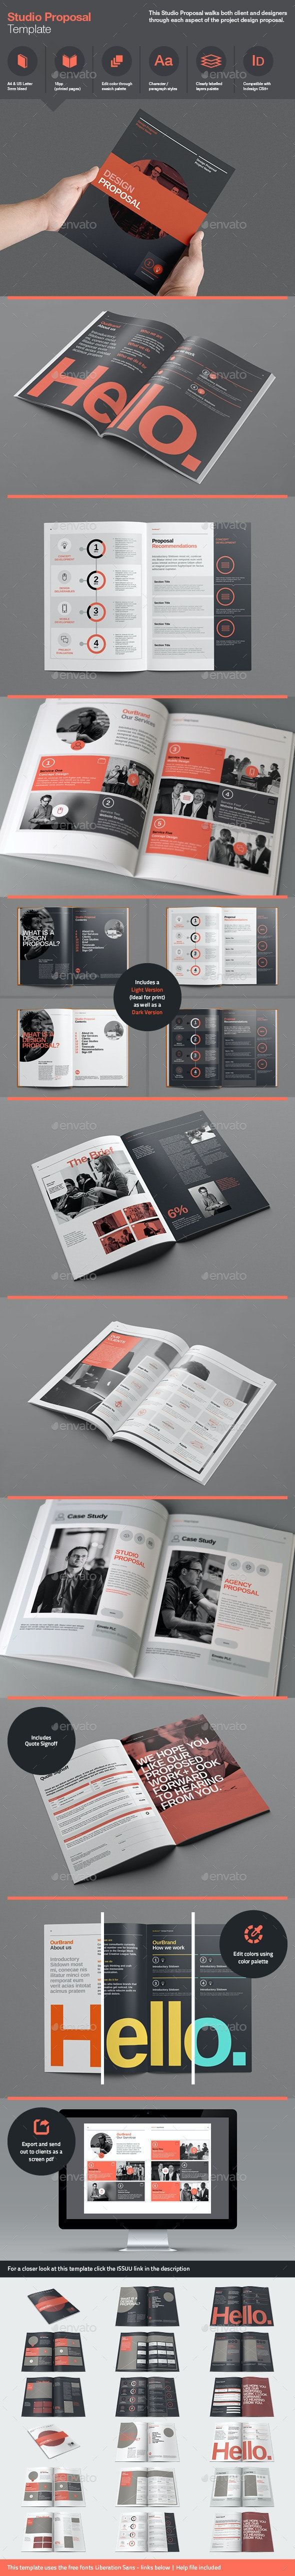 Studio Proposal Template - Proposals & Invoices Stationery